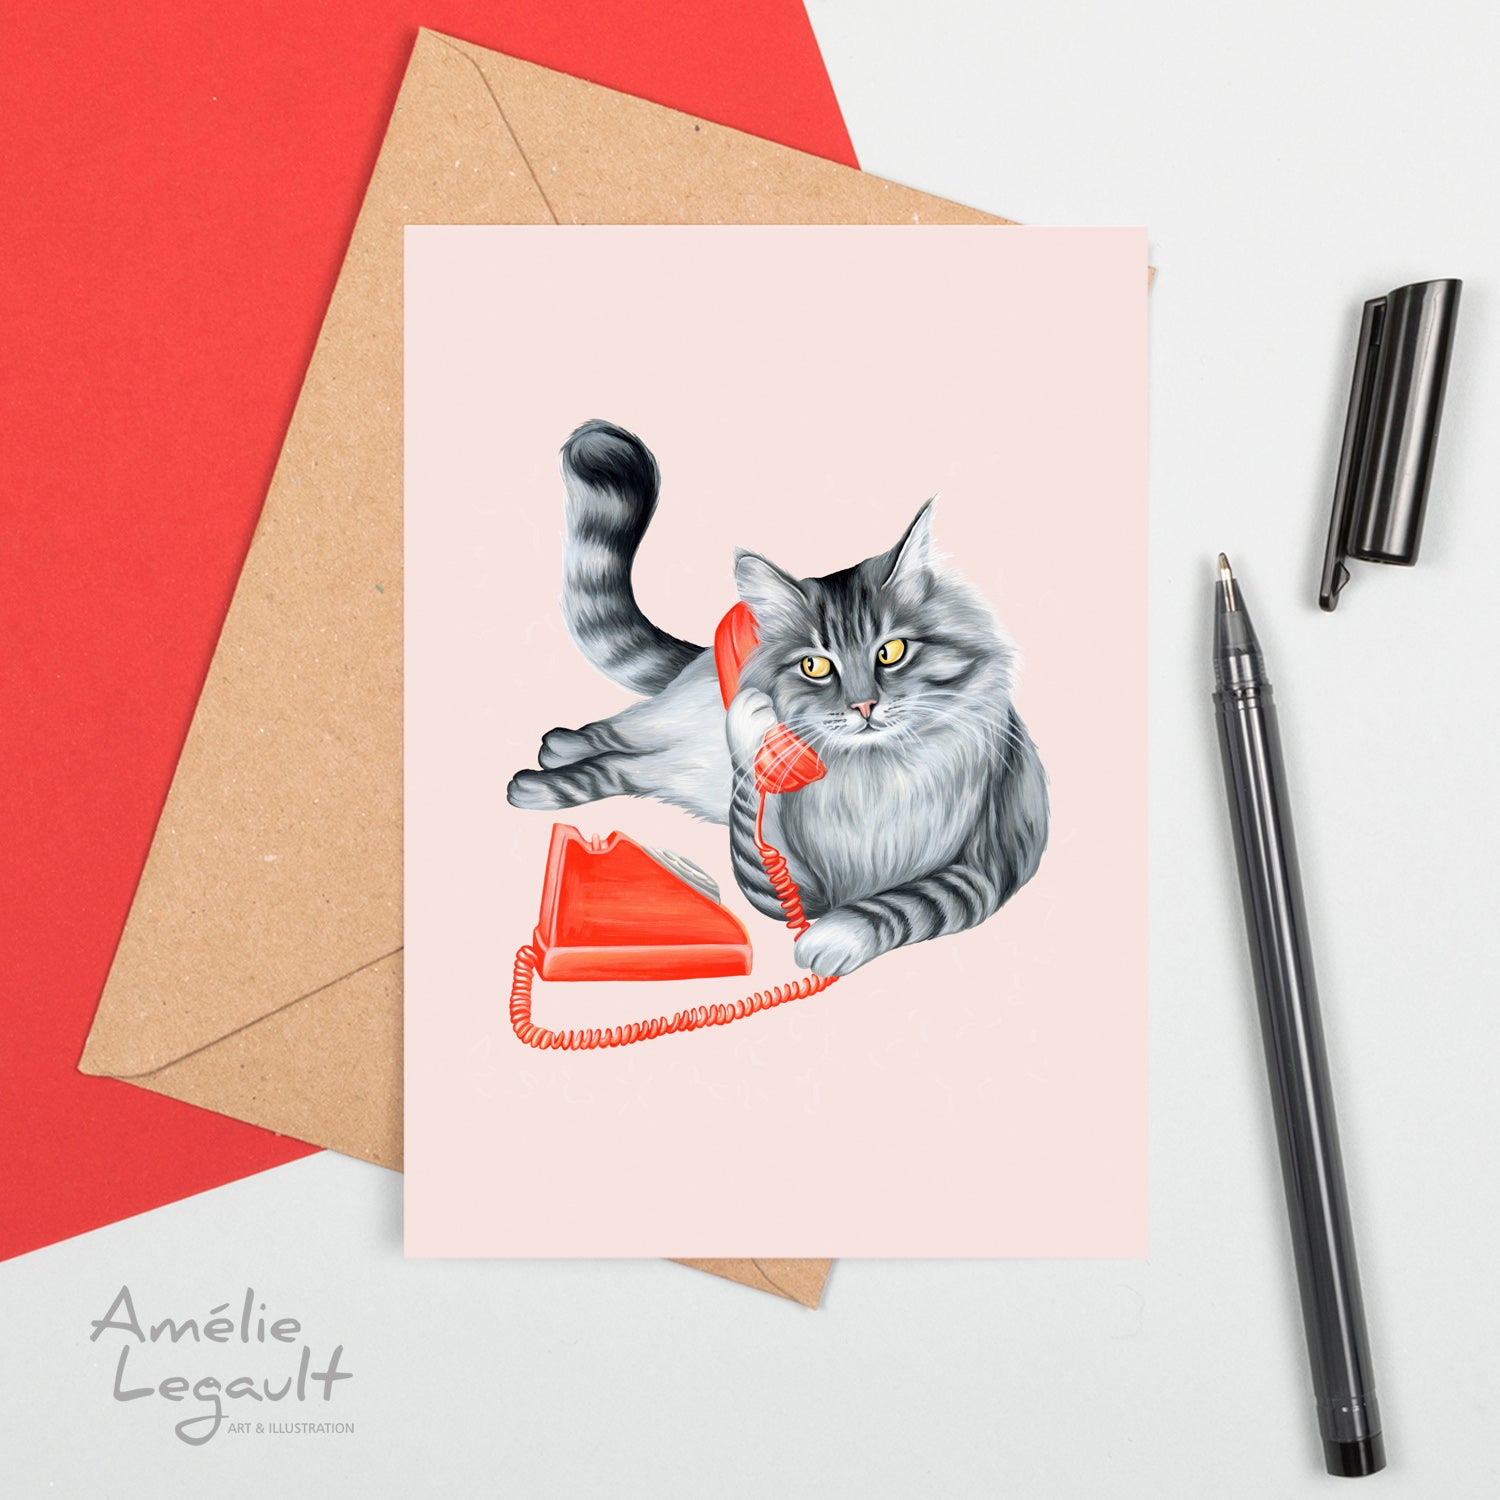 cat on the phone, cat illustration, cat lover, cat lady, vintage phone, greeting card, birthday card, amelie legault